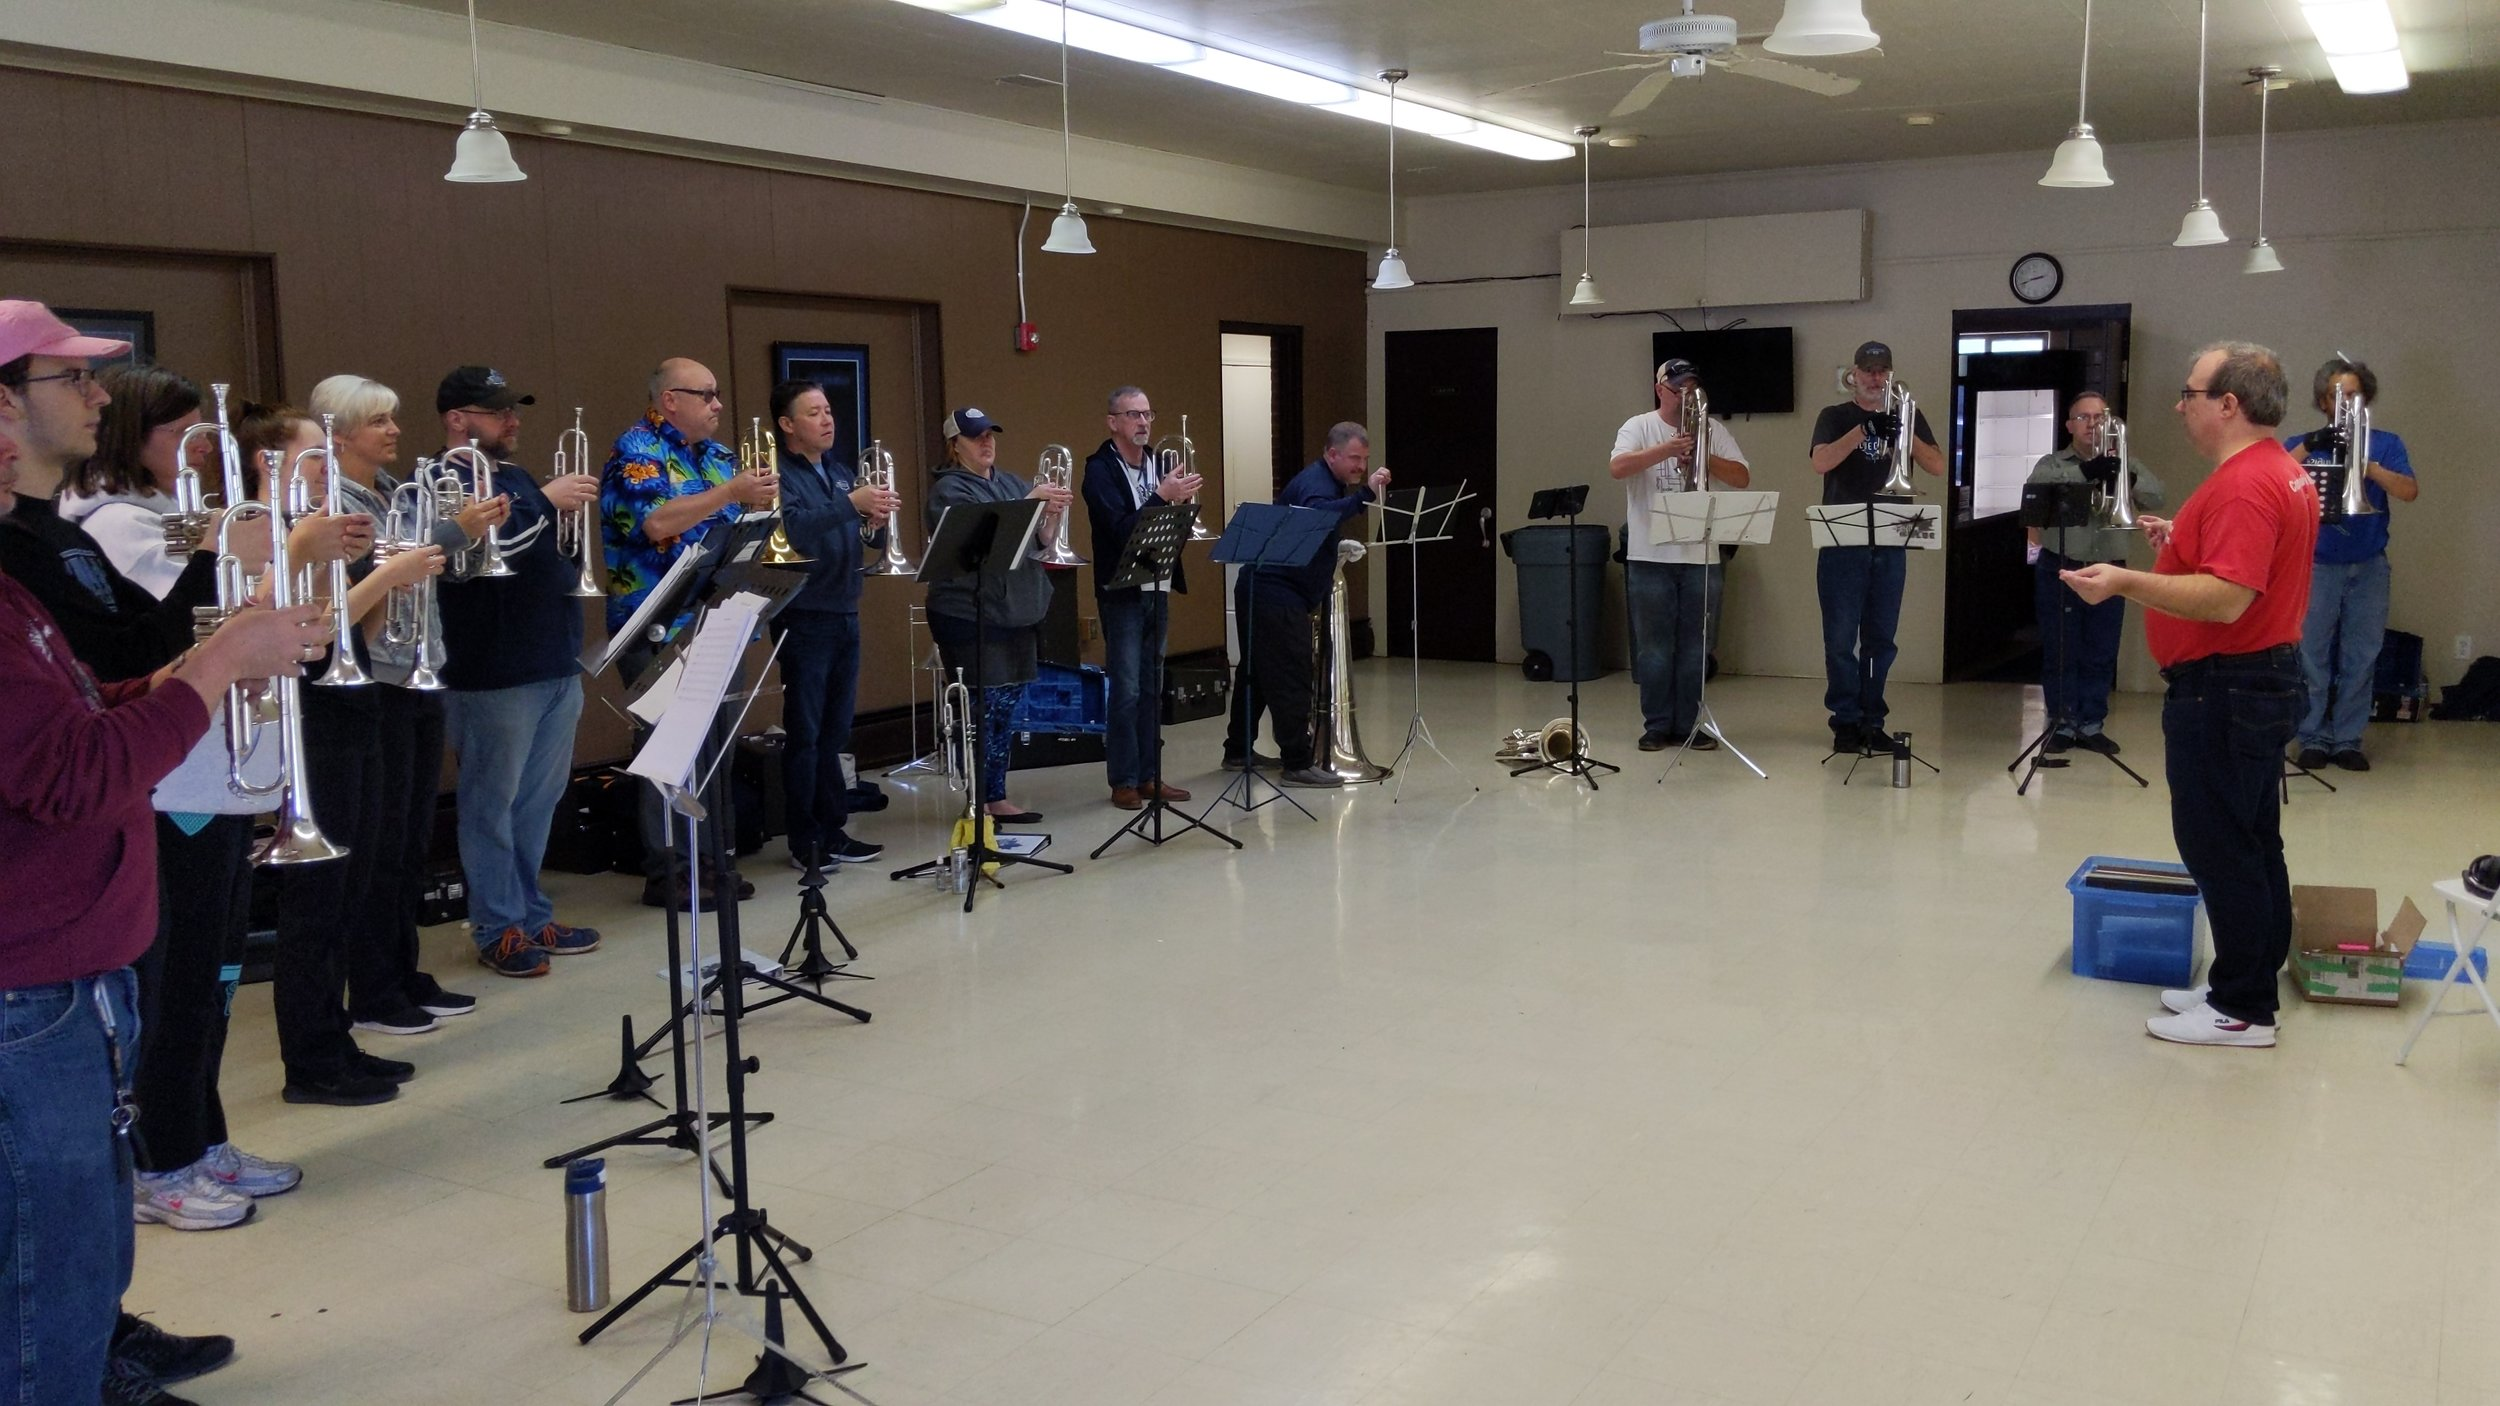 Rhythm IN BLUE rehearsing on Saturday afternoon.